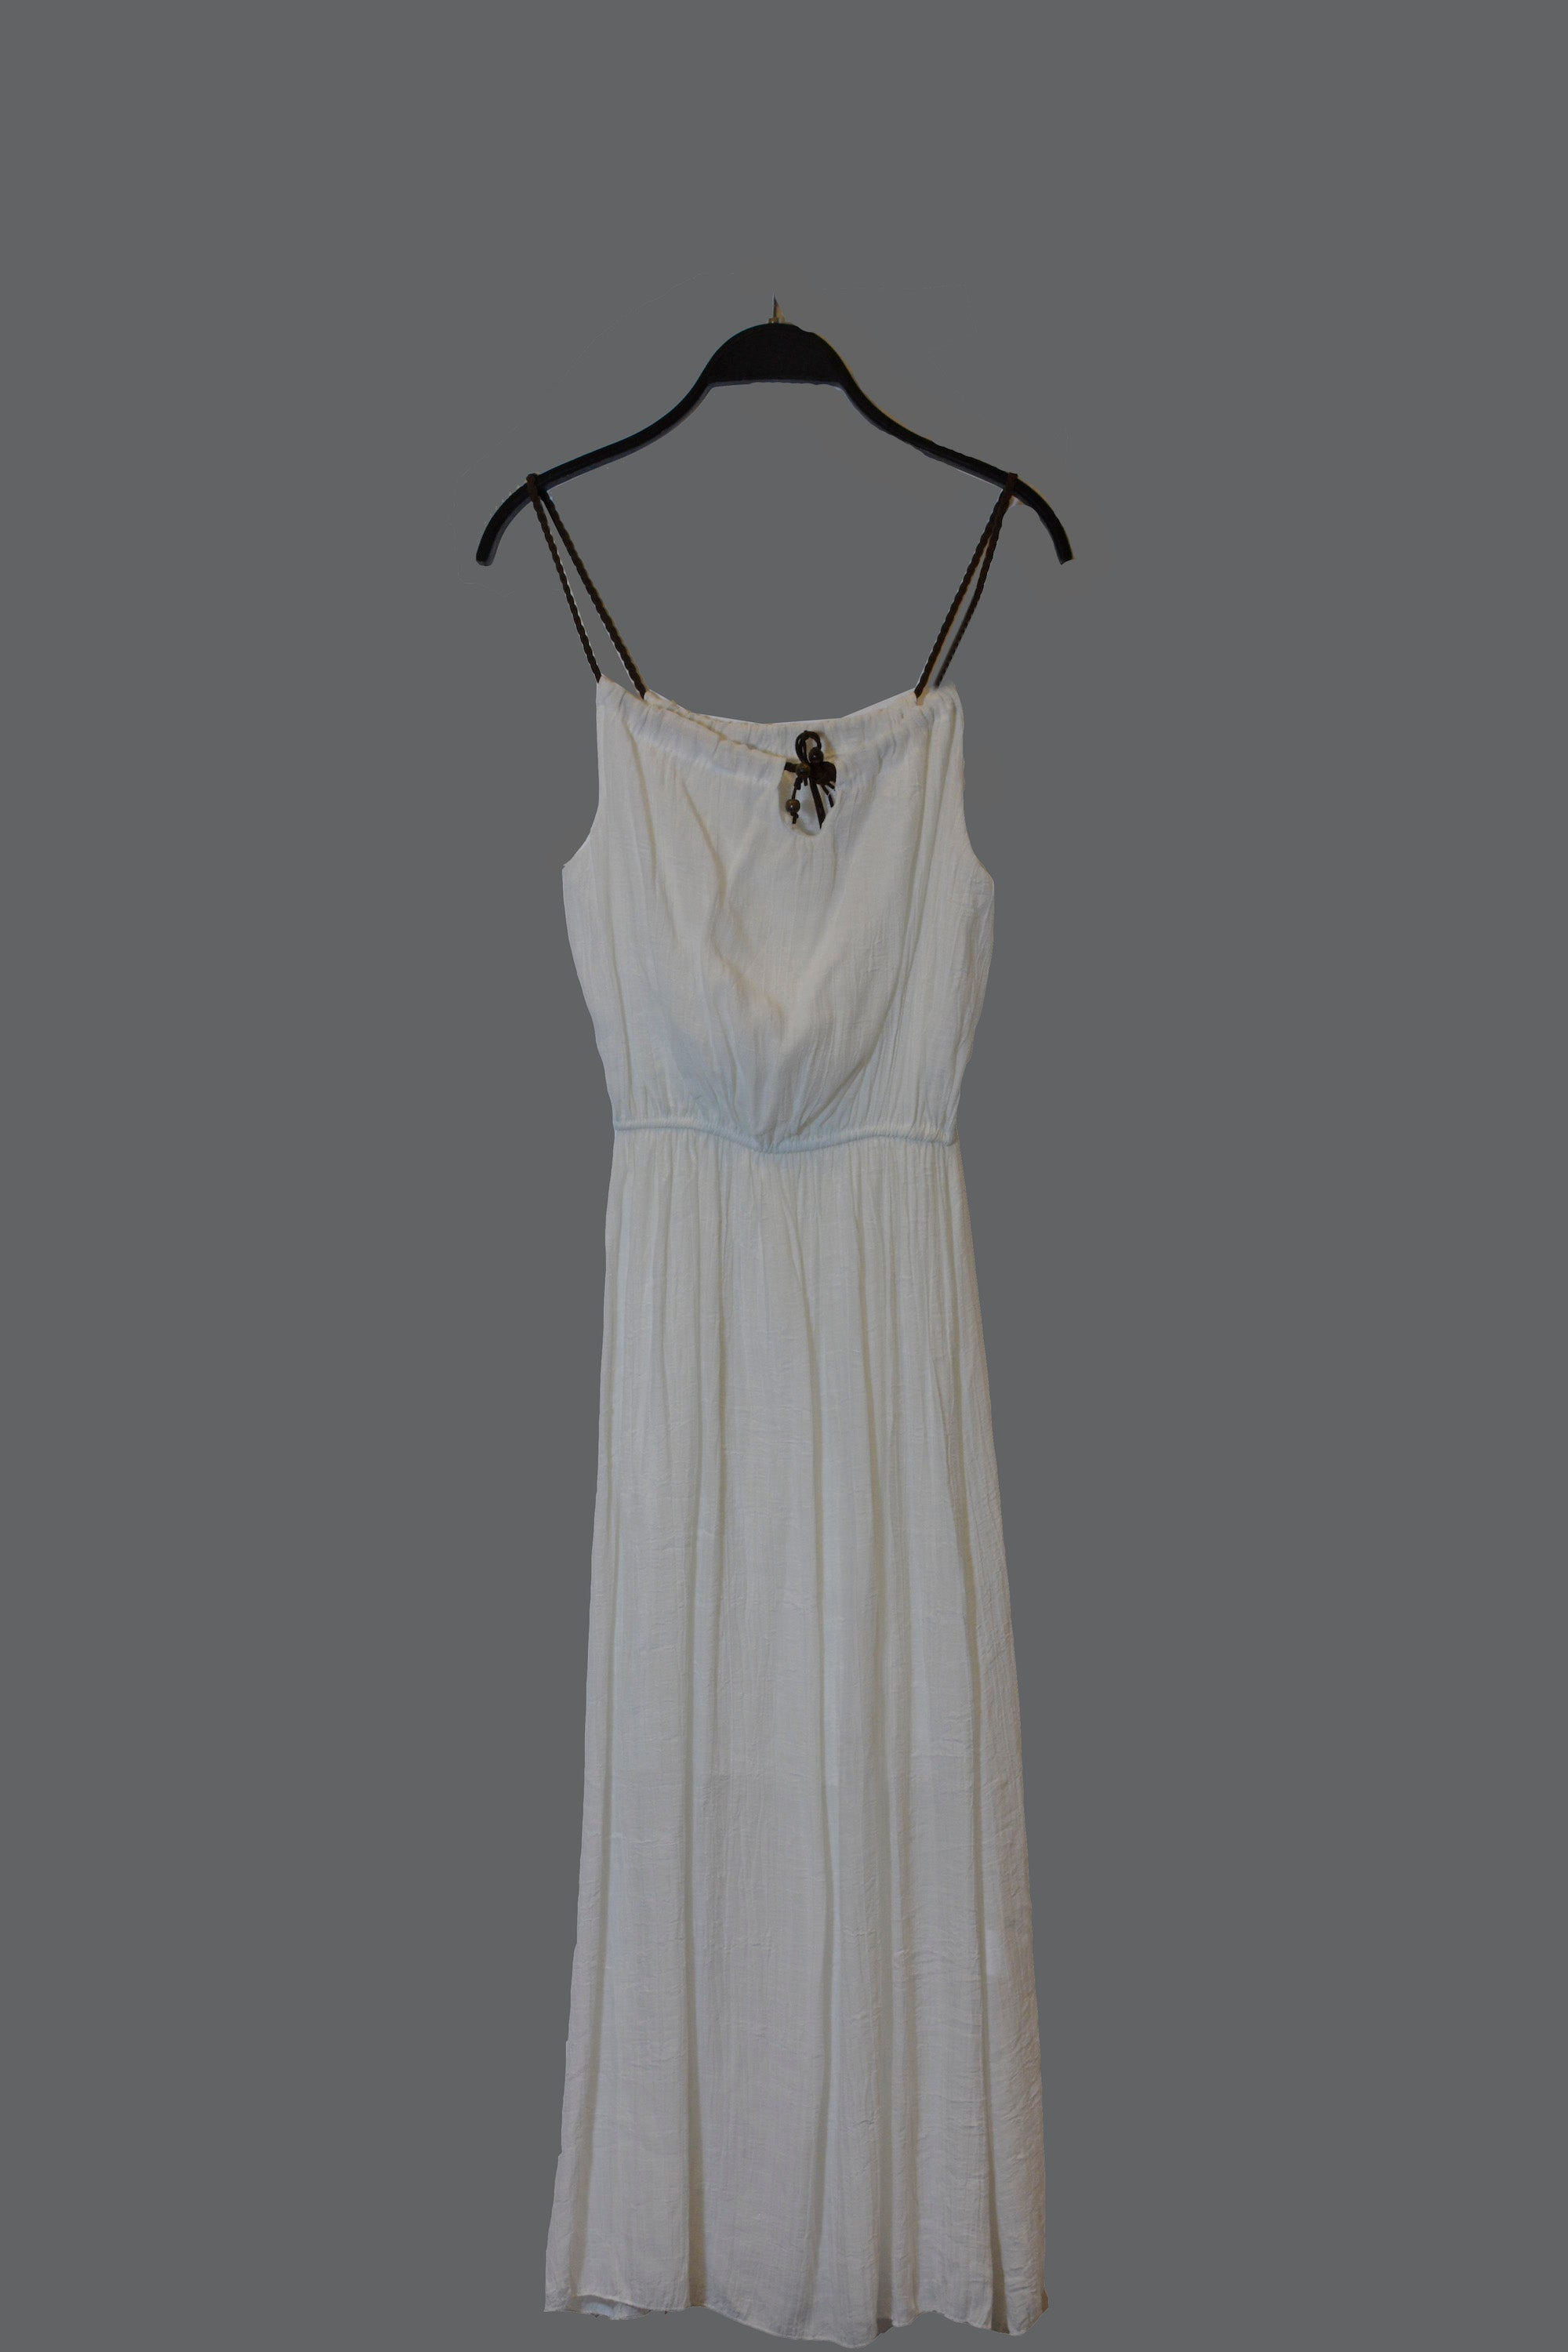 White Braided Maxi Dress With Spaghetti Straps and adjustable brown tie at neckline